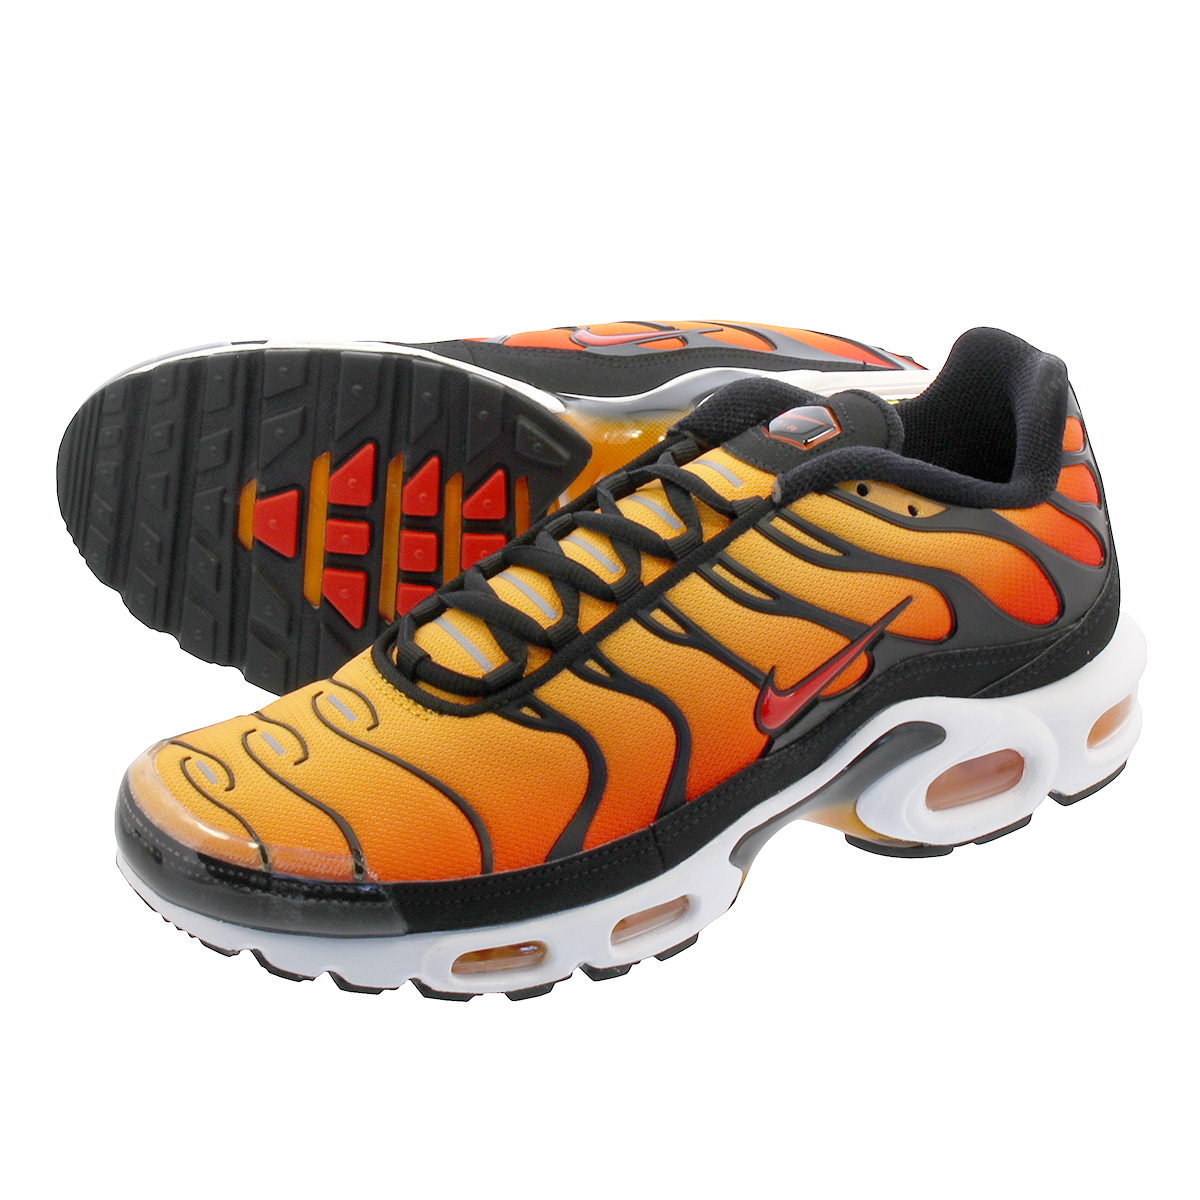 official photos 7d1a6 af44d NIKE AIR MAX PLUS OG Kie Ney AMAX plus OG BLACK/PIMENTO/BRIGHT  CERAMIC/RESIN bq4629-001